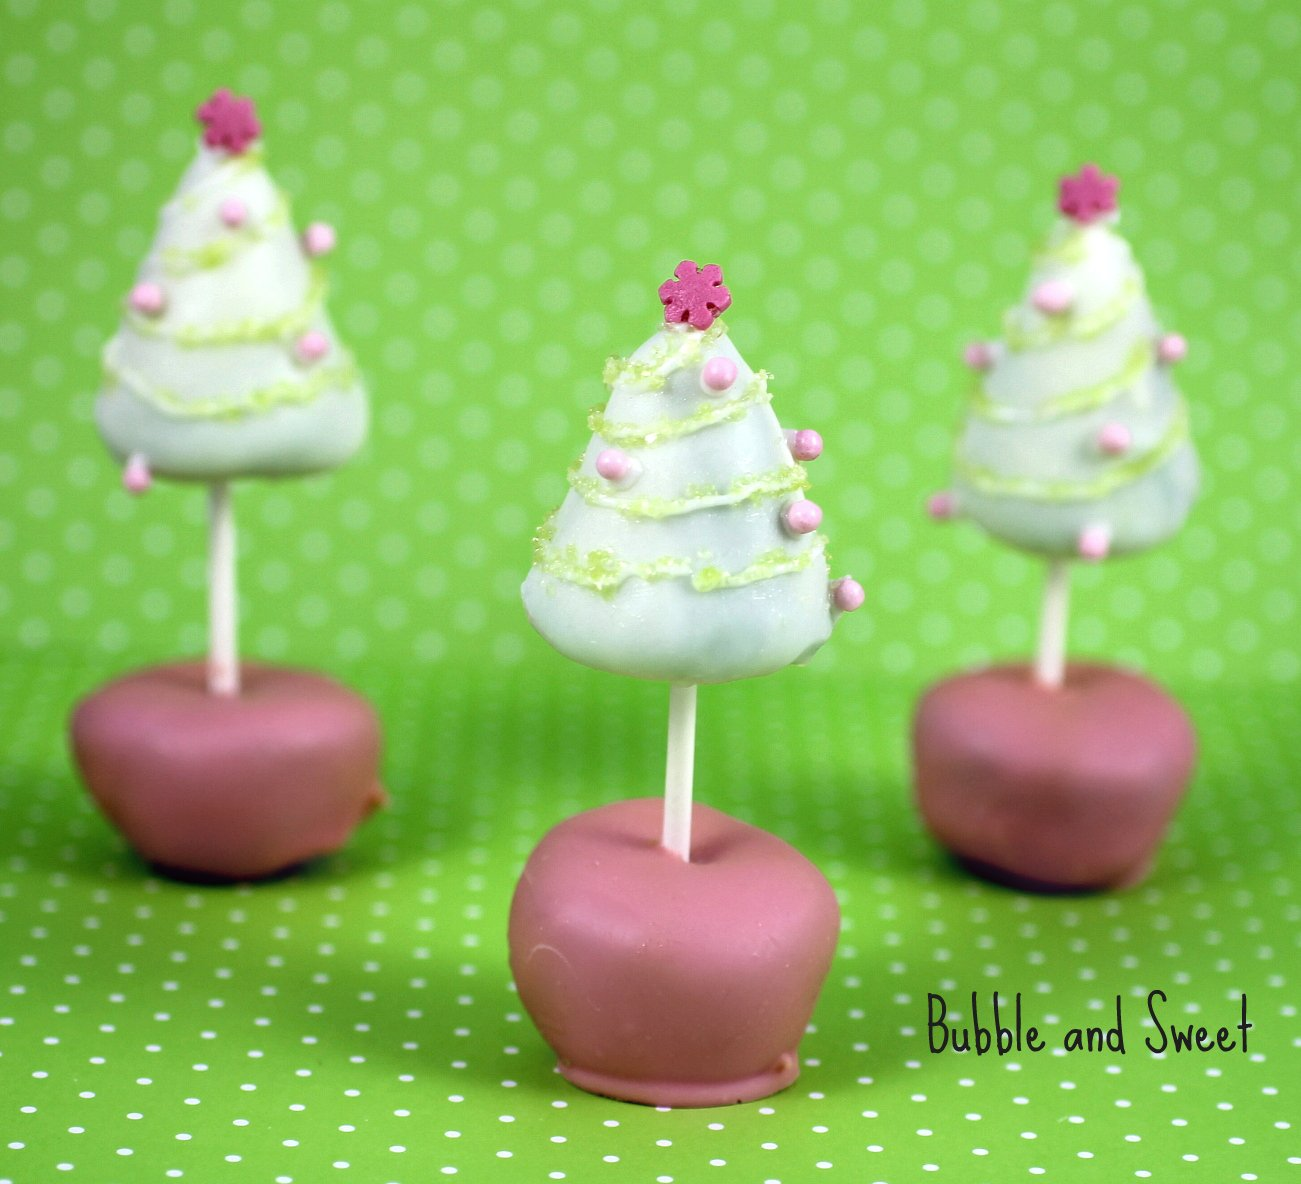 Bubble and Sweet: Christmas Tree Cake pop - Yup double sided cake pops